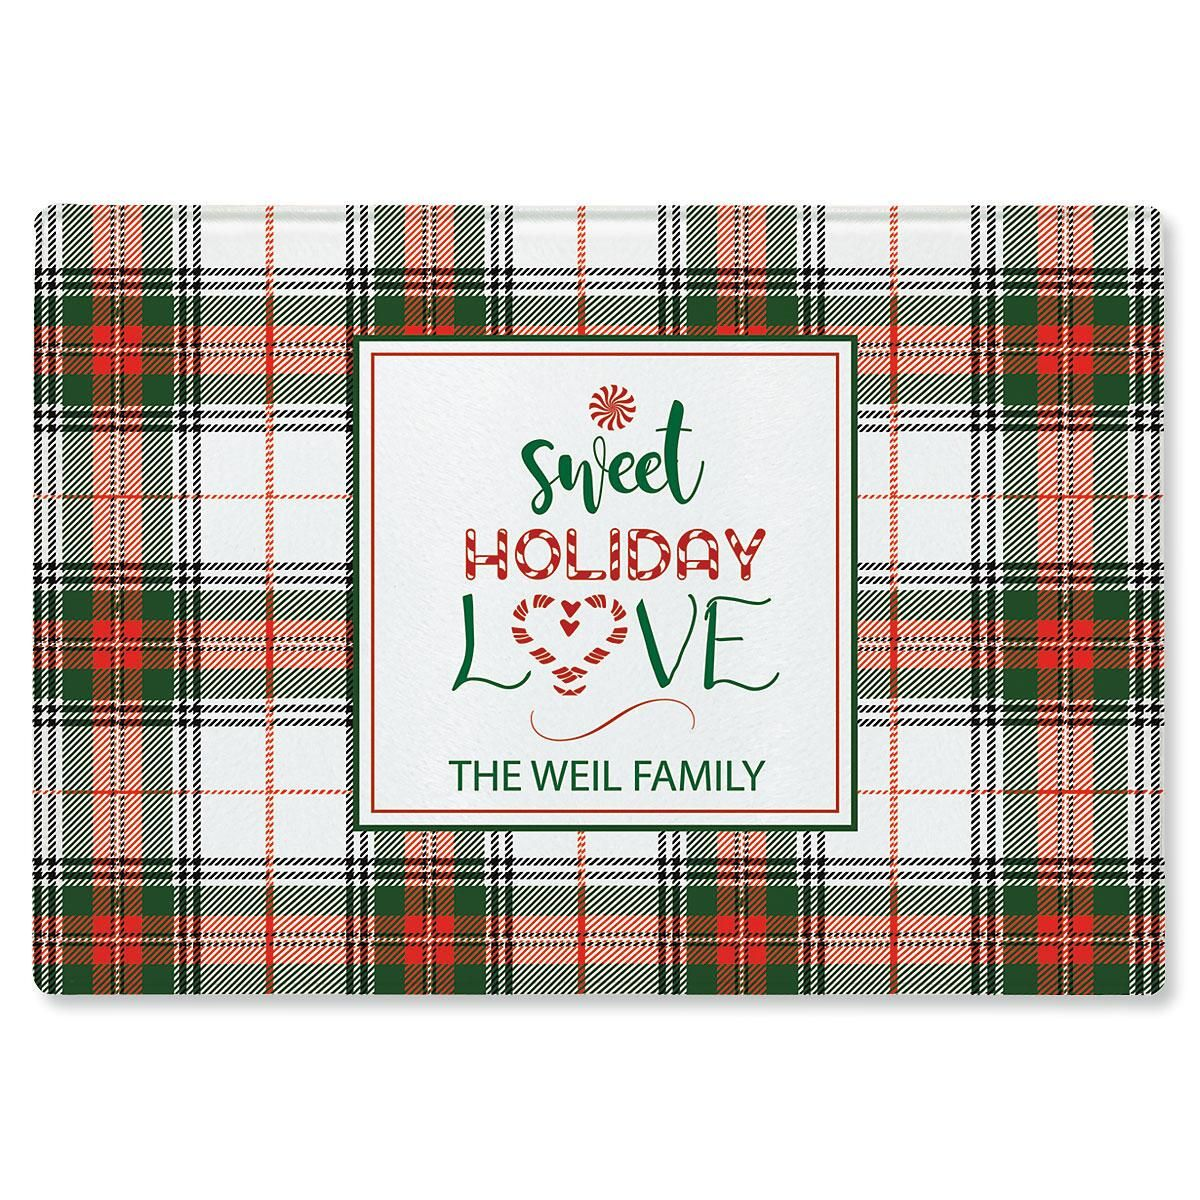 Sweet Holiday Love Personalized Cutting Board